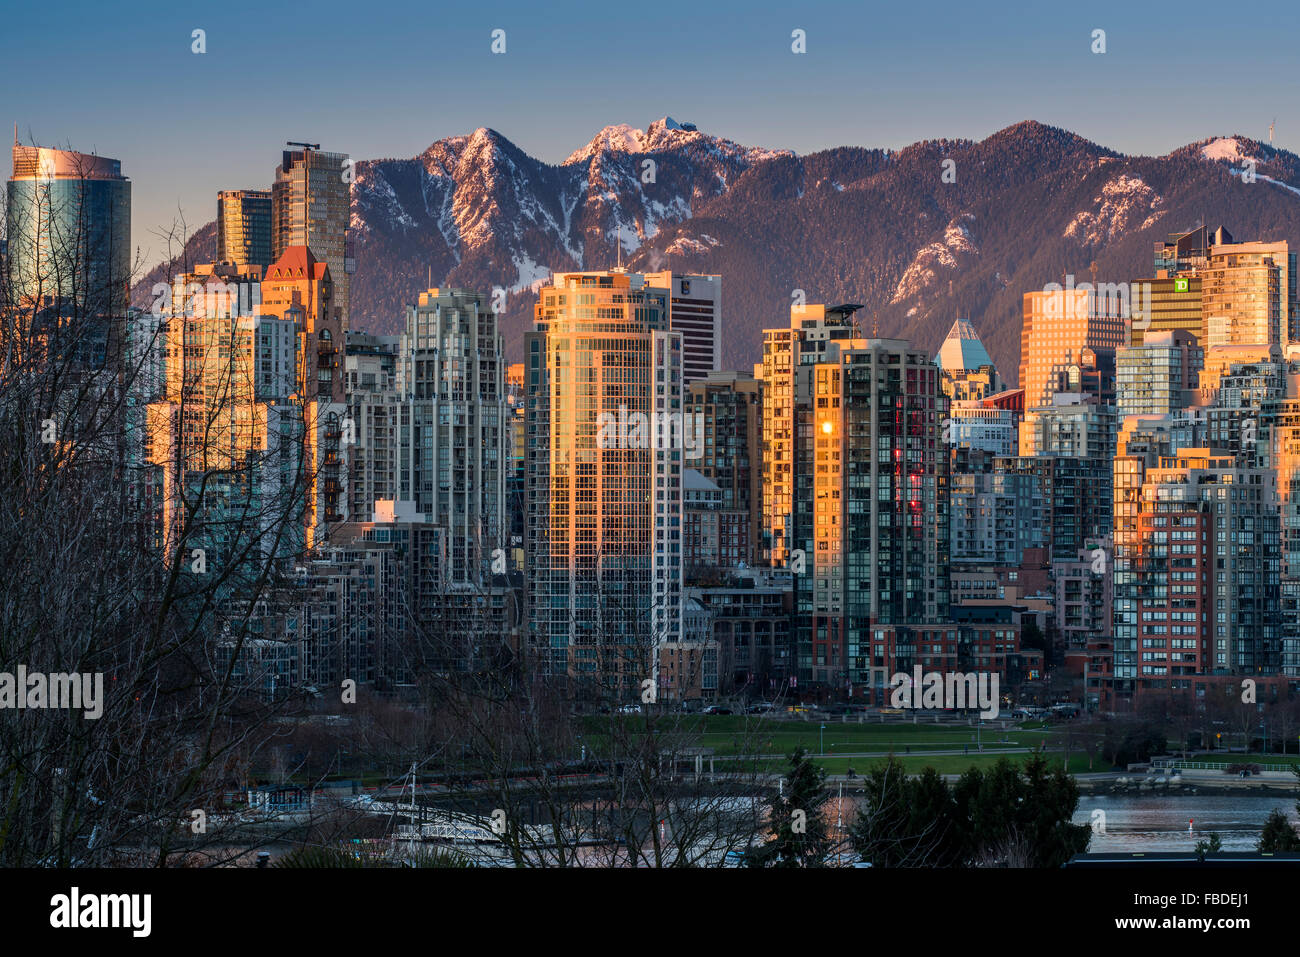 Downtown skyline with snowy mountains behind at sunset, Vancouver, British Columbia, Canada - Stock Image